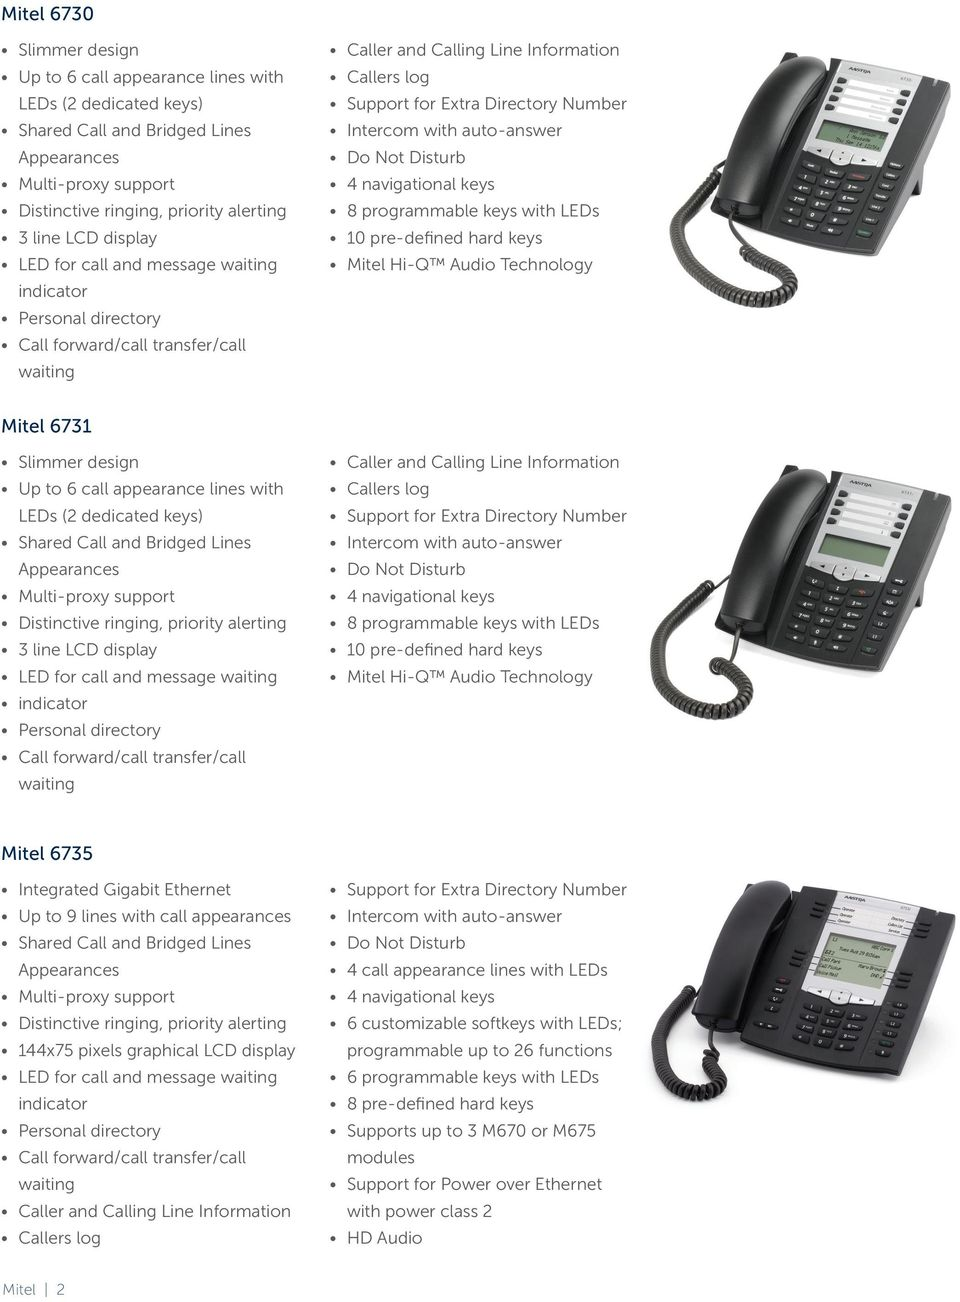 hard keys Mitel Hi-Q Audio Technology Mitel 6735 Integrated Gigabit Ethernet Shared Call and Bridged Lines 144x75 pixels graphical LCD display 4 call appearance lines with LEDs 6 customizable